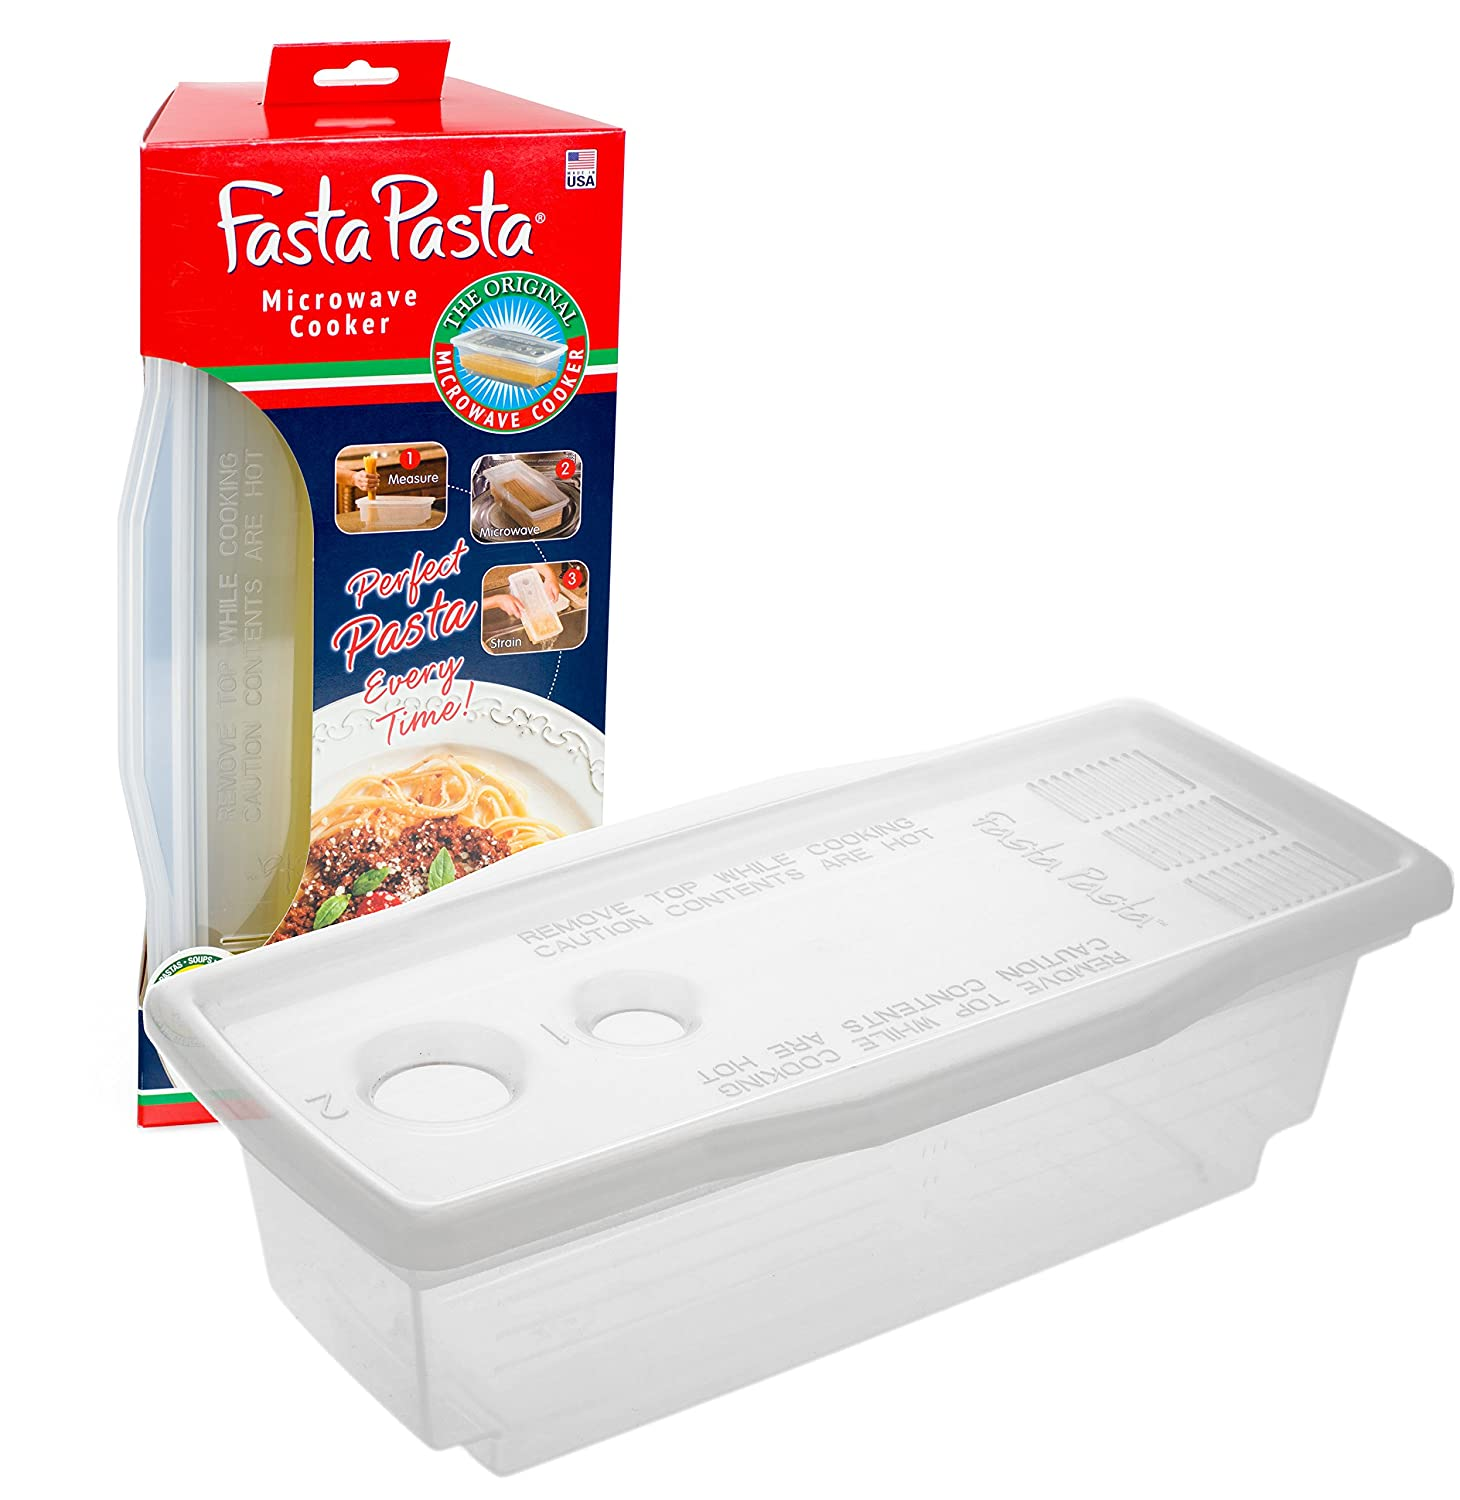 Fasta Pasta Microwave Pasta Cooker - The Original No Mess, Sticking or Waiting For Boil